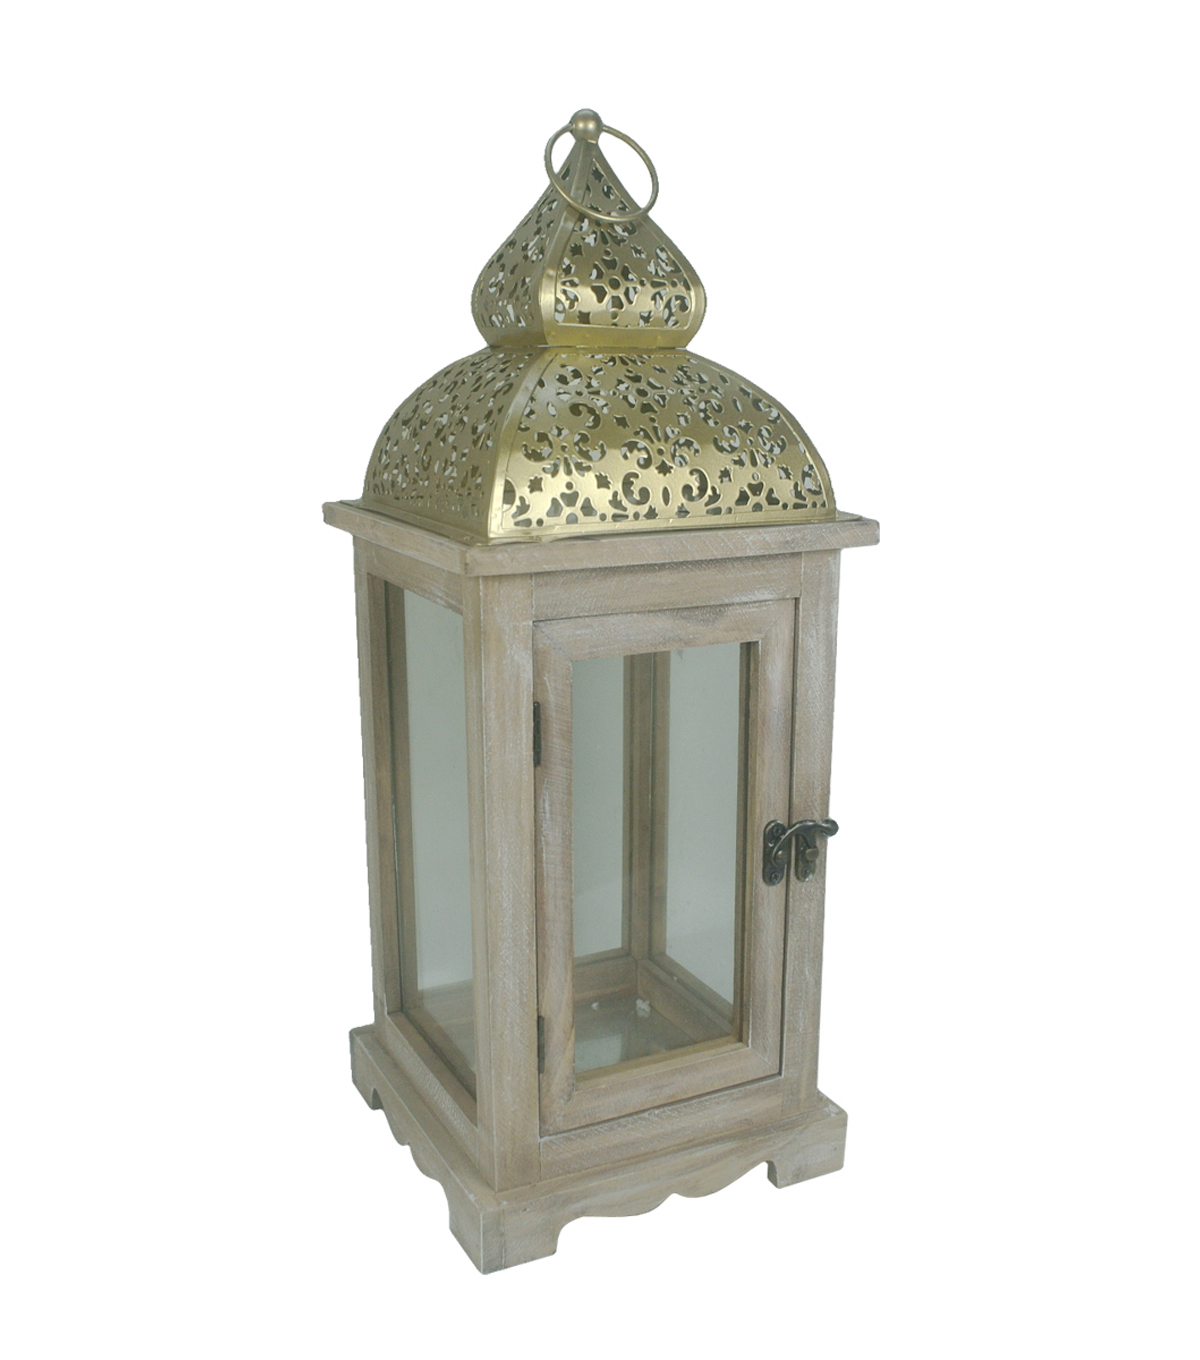 Hudson 43 Candle & Light Collection Wooden Lantern W Iron Roof Cut Out